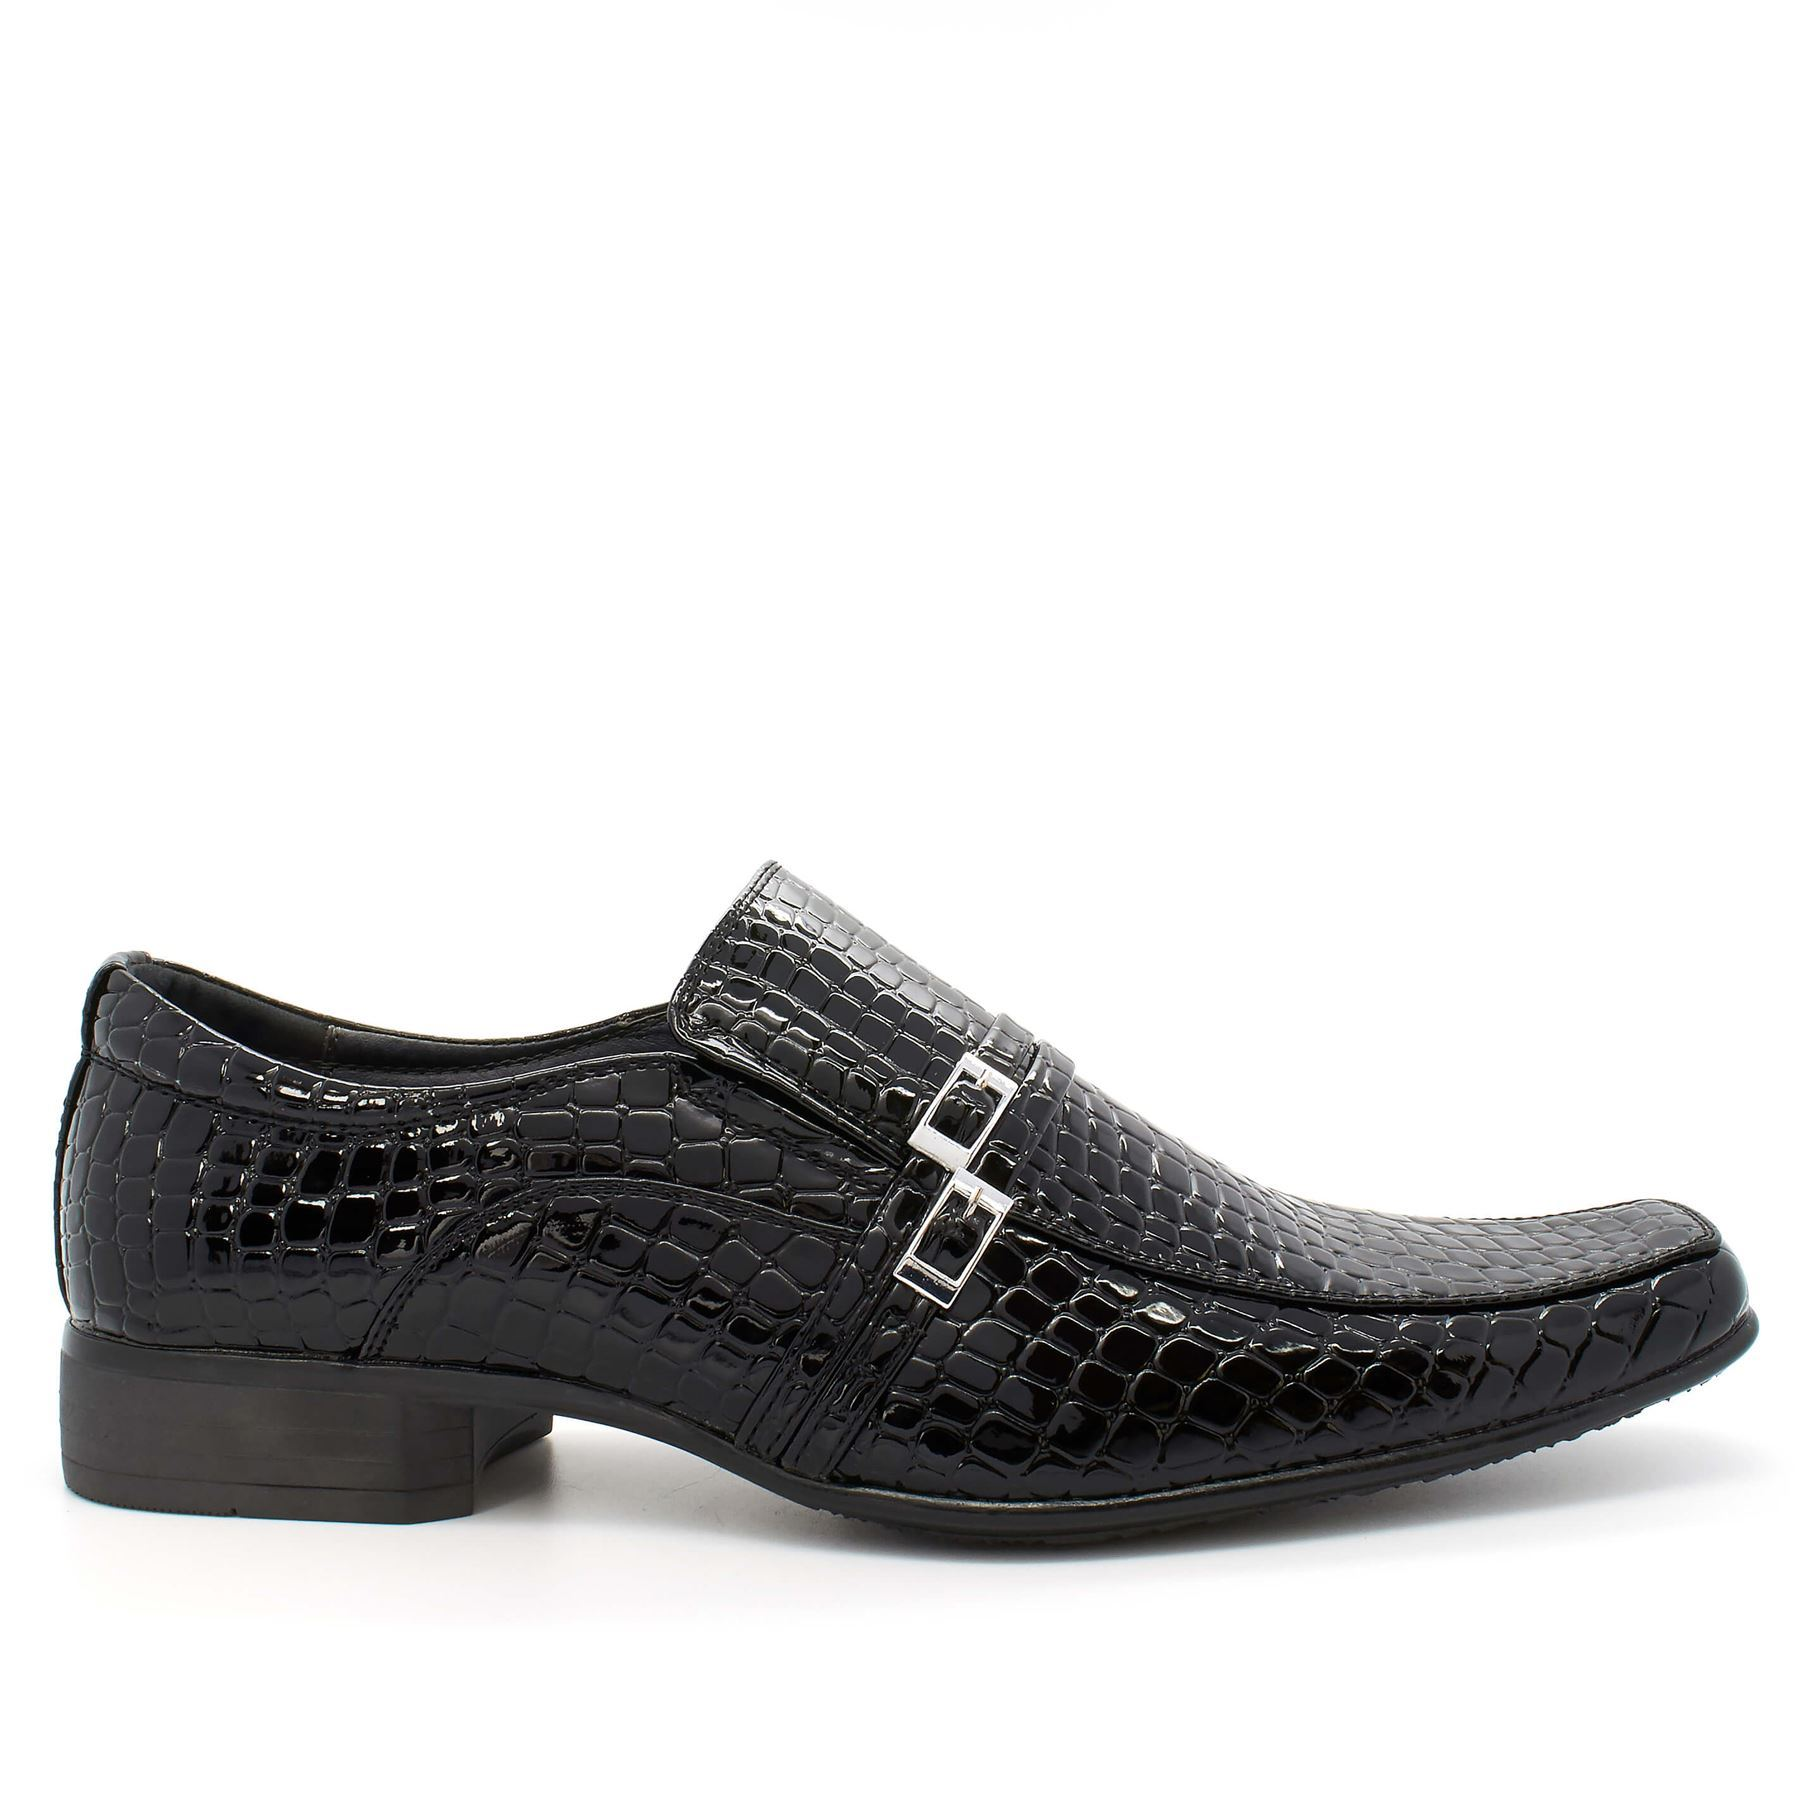 new mens slip on shoes dress formal pointed black faux